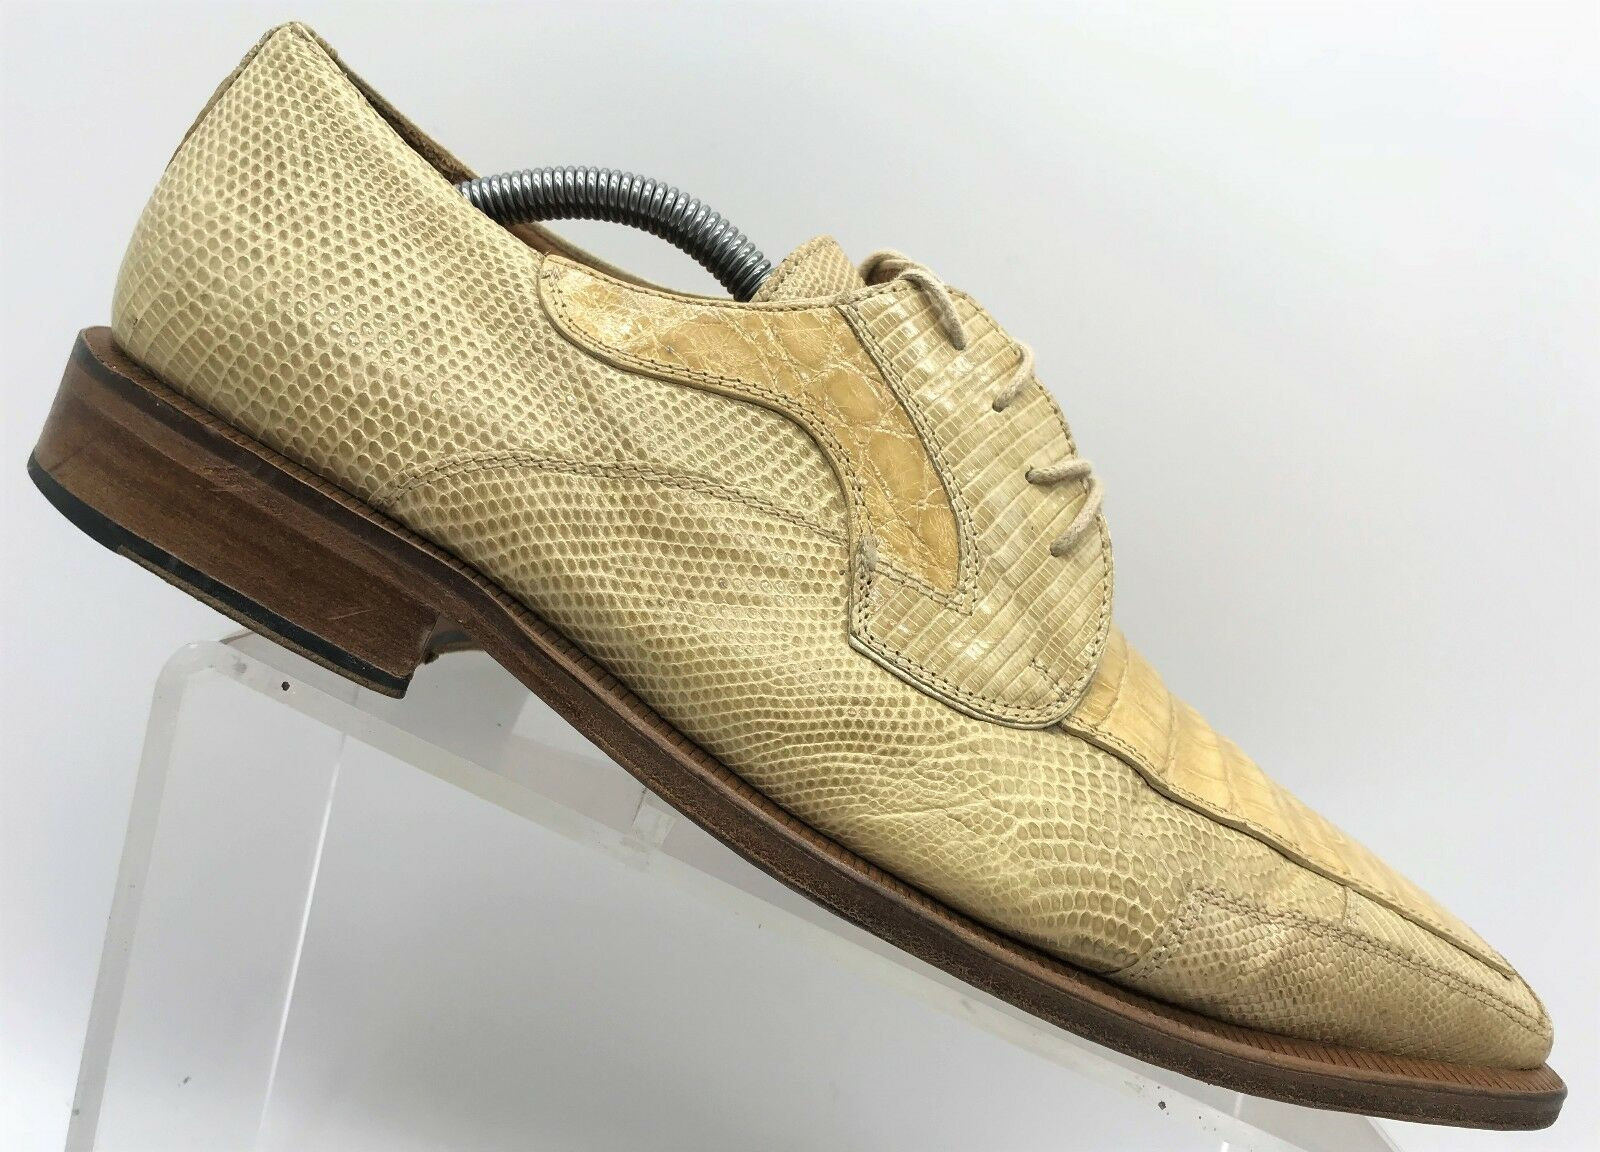 David Eden Beige Exotic Lizard Crocodile Reptile Skin Oxfords Men's shoes 10.5